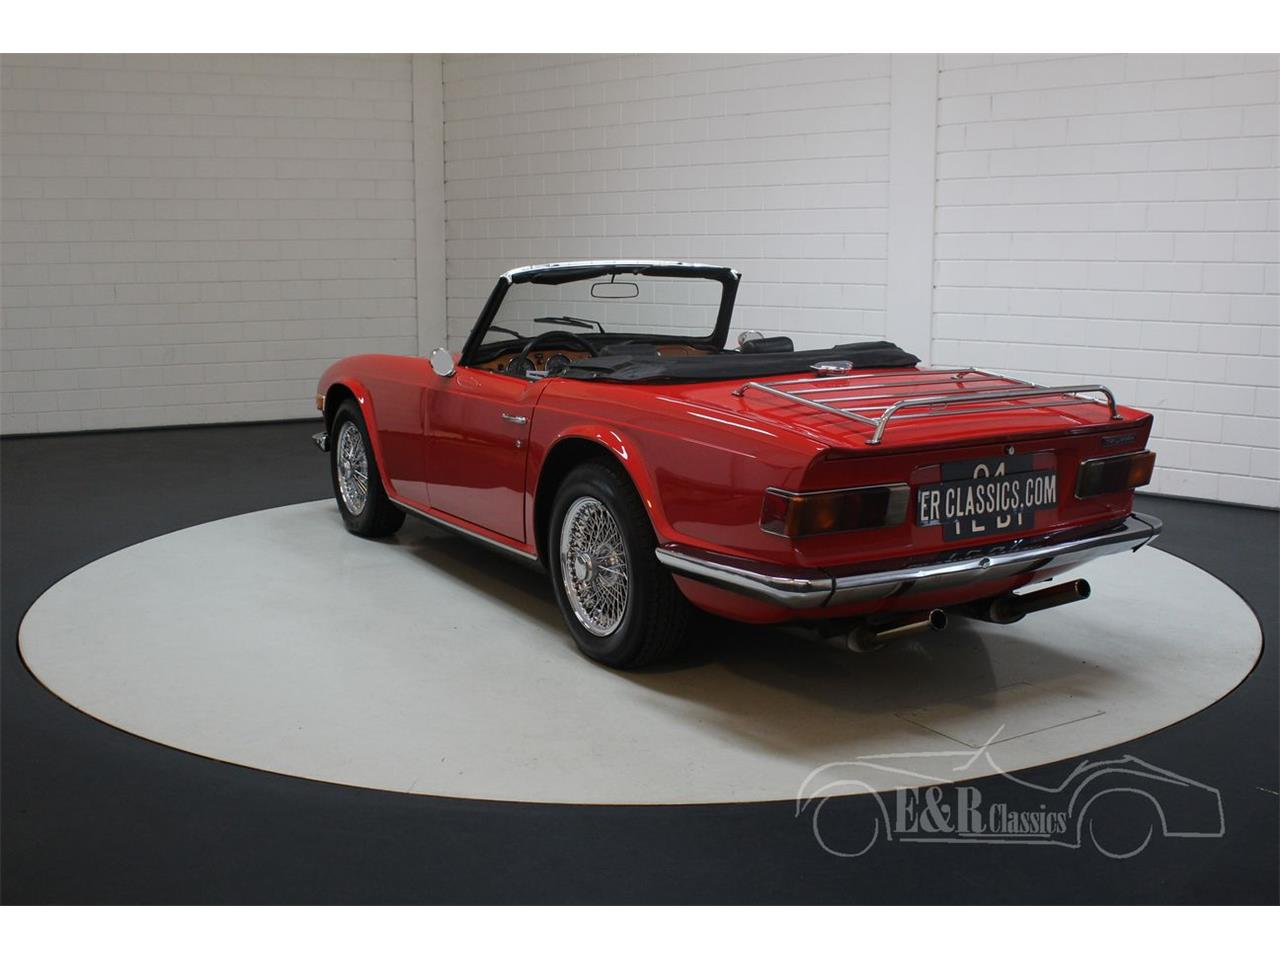 Large Picture of '73 Triumph TR6 located in Noord Brabant - $25,800.00 Offered by E & R Classics - PWMQ